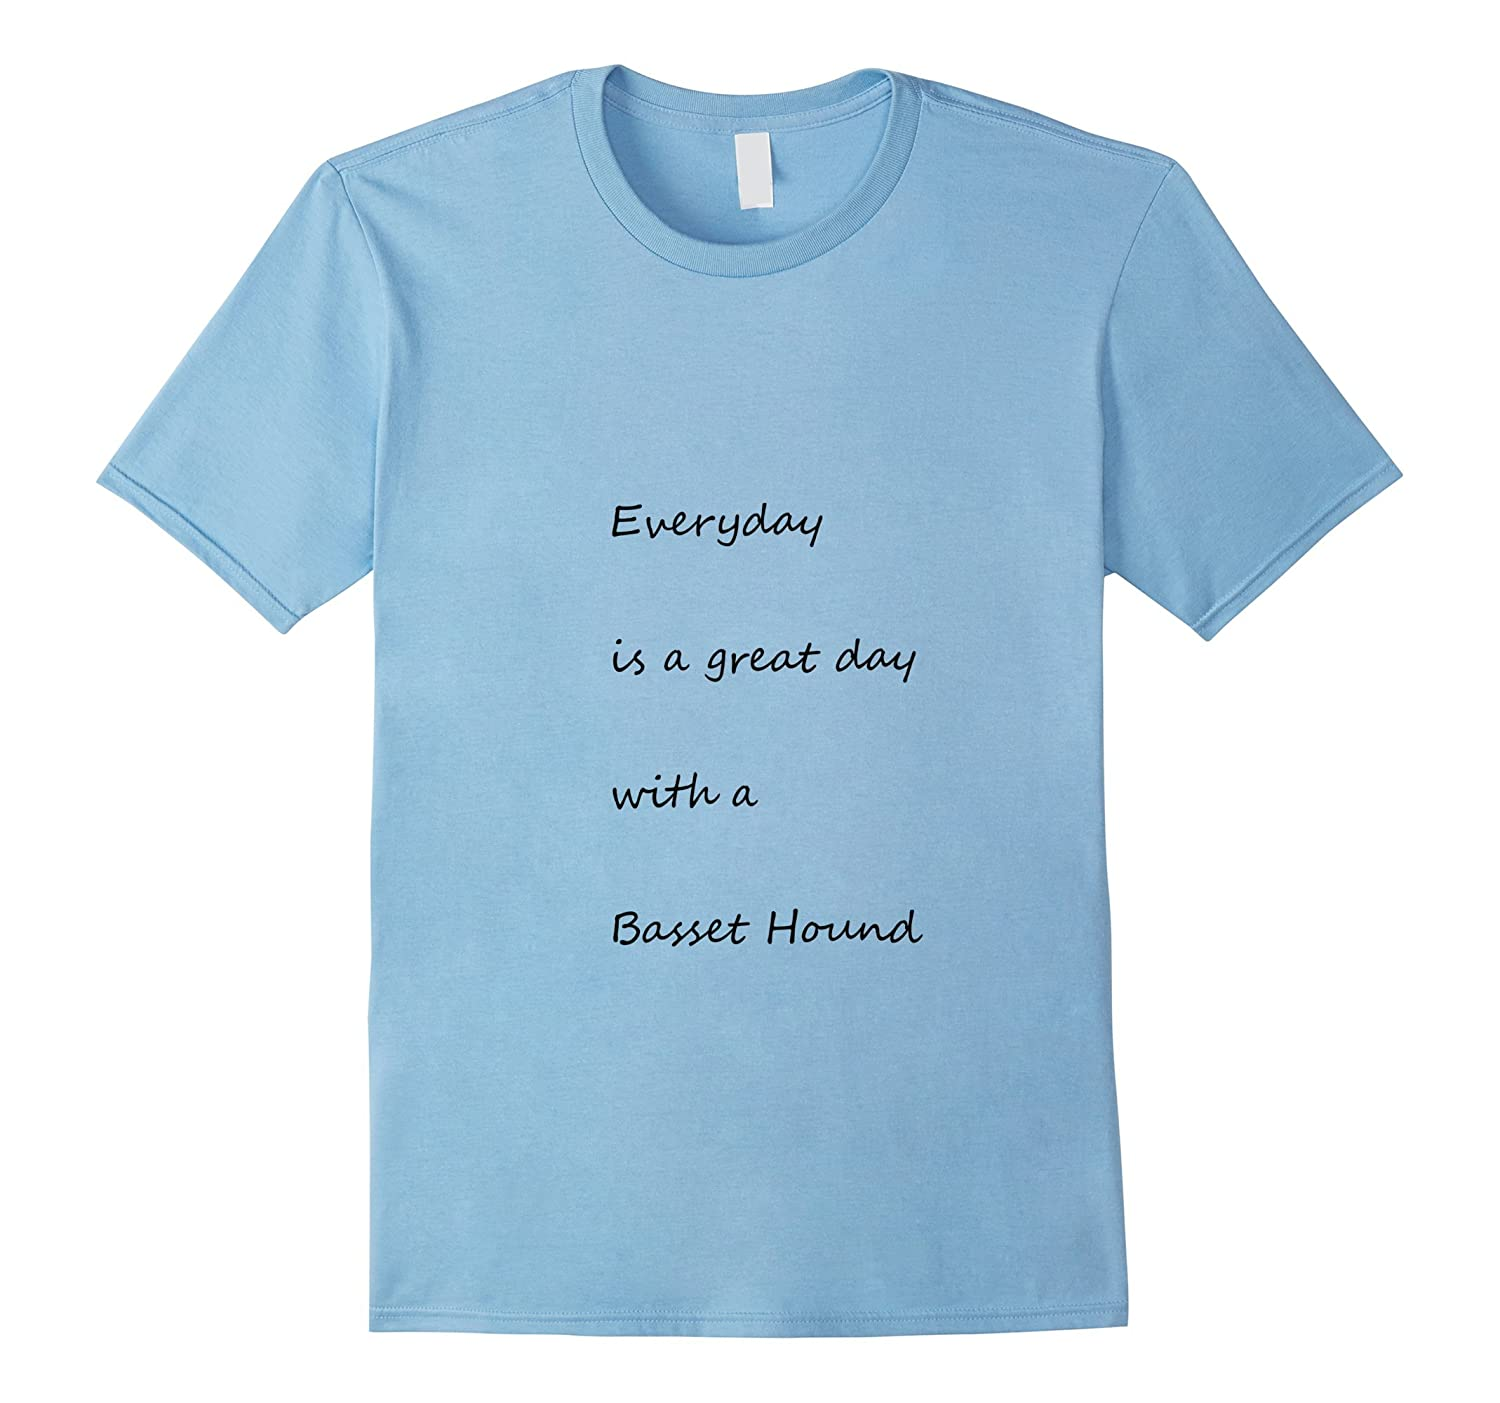 Everyday is a great day with a Basset Hound-Vaci